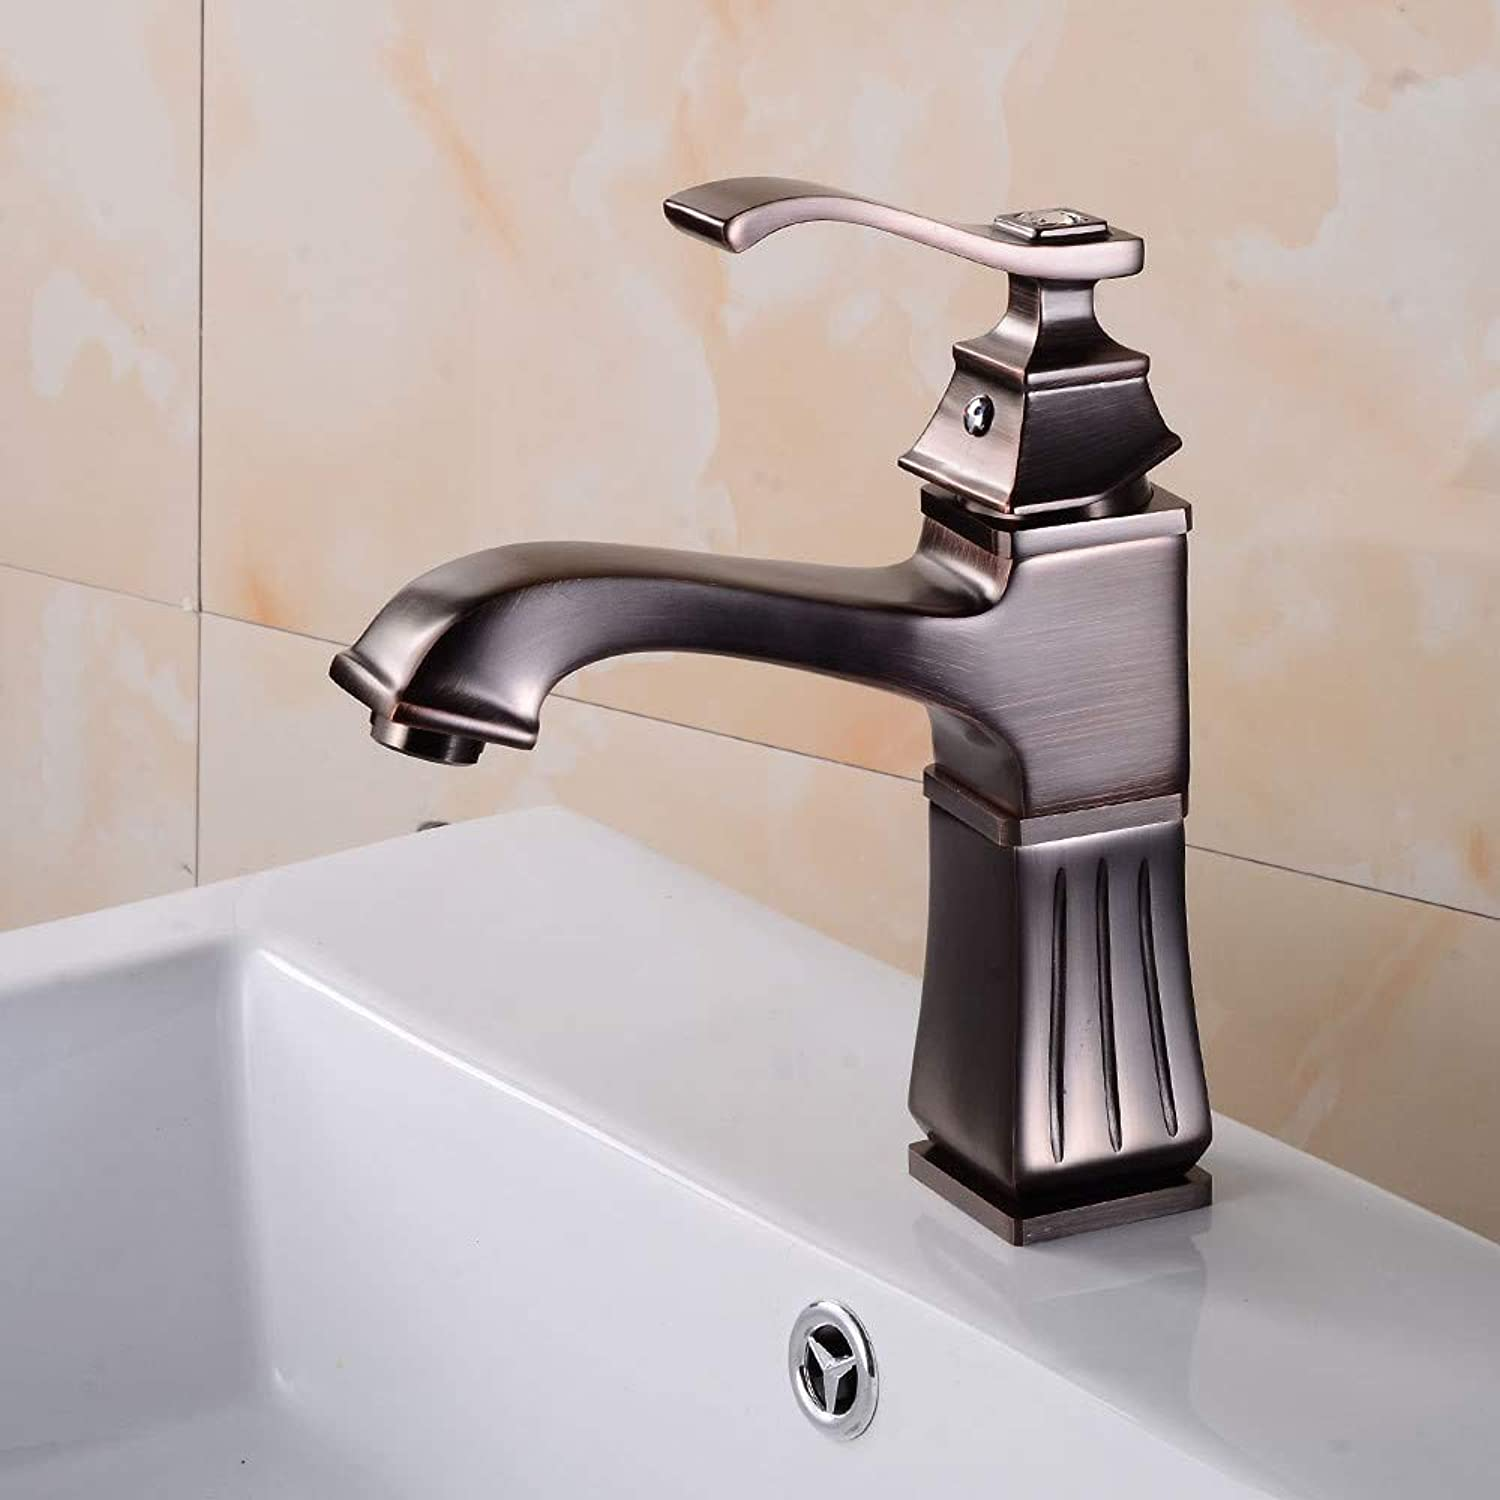 YAWEDA Orb Basin Faucet Square Hot and Cold Water Mixer Table Lower Basin Bathroom Sink Faucet Single Hole Single Handle with Aerator Hotel Bathroom Faucet